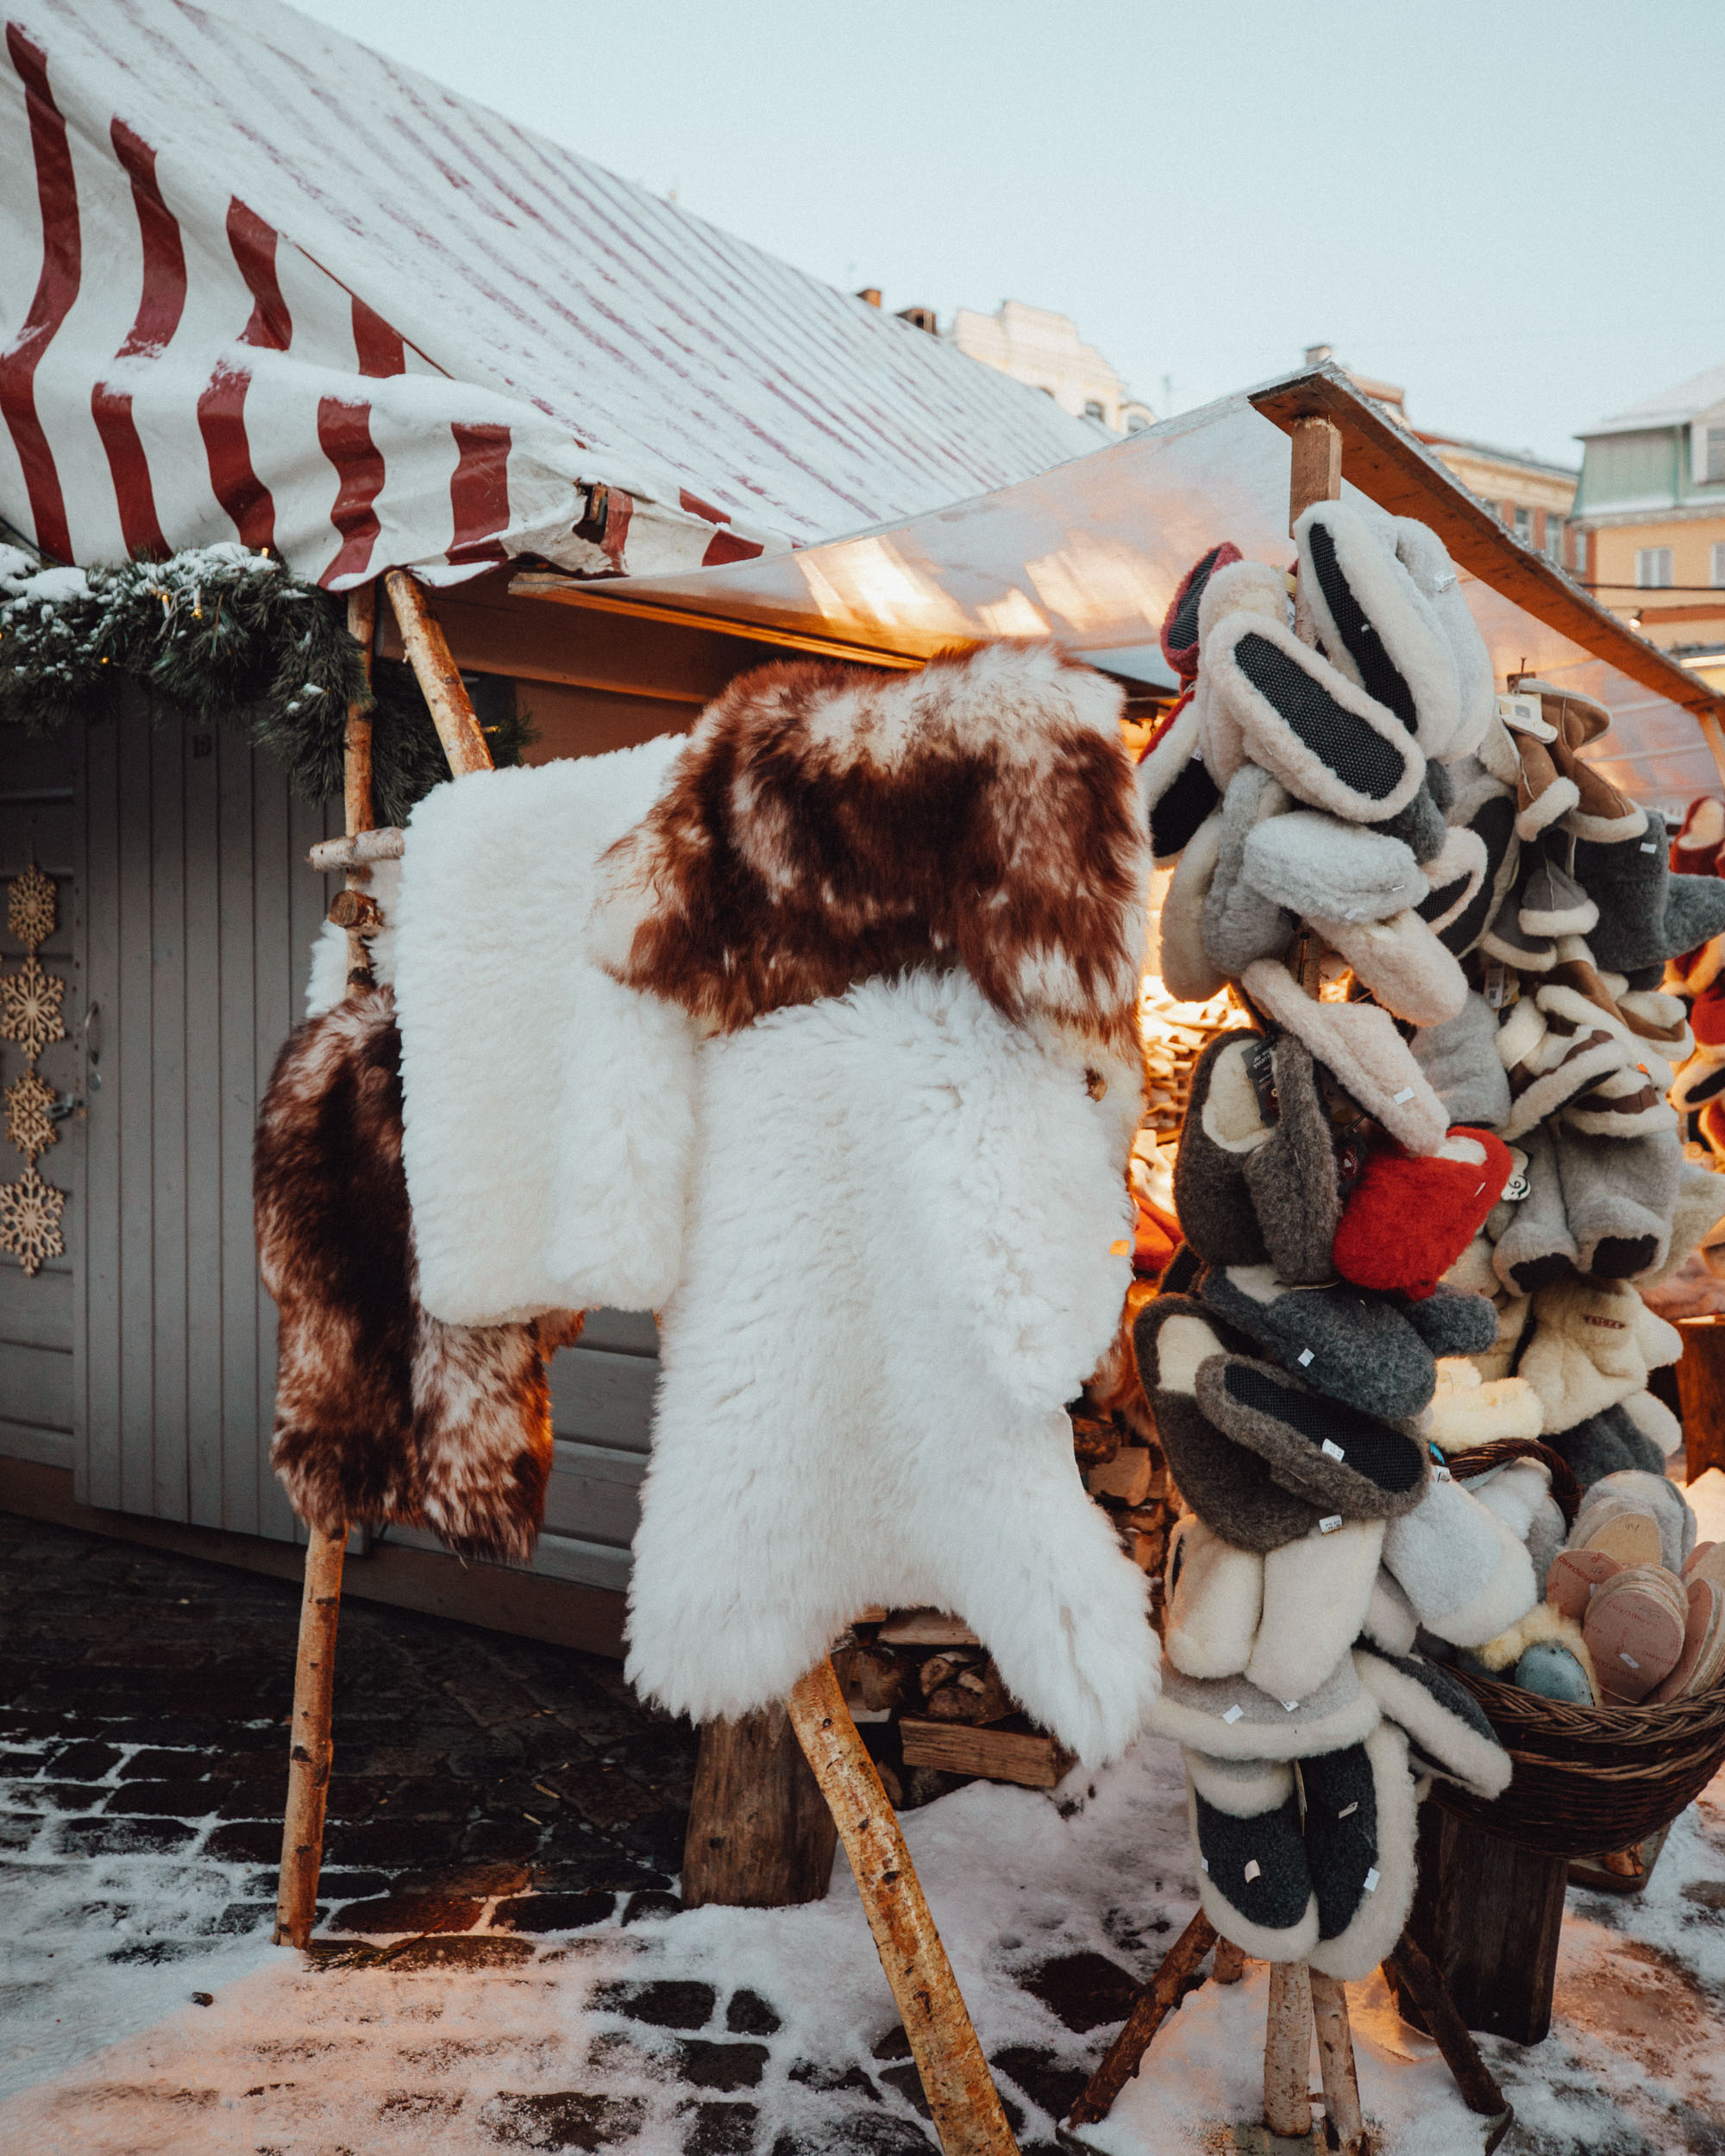 Riga Latvia Christmas Market in Winter via @finduslost